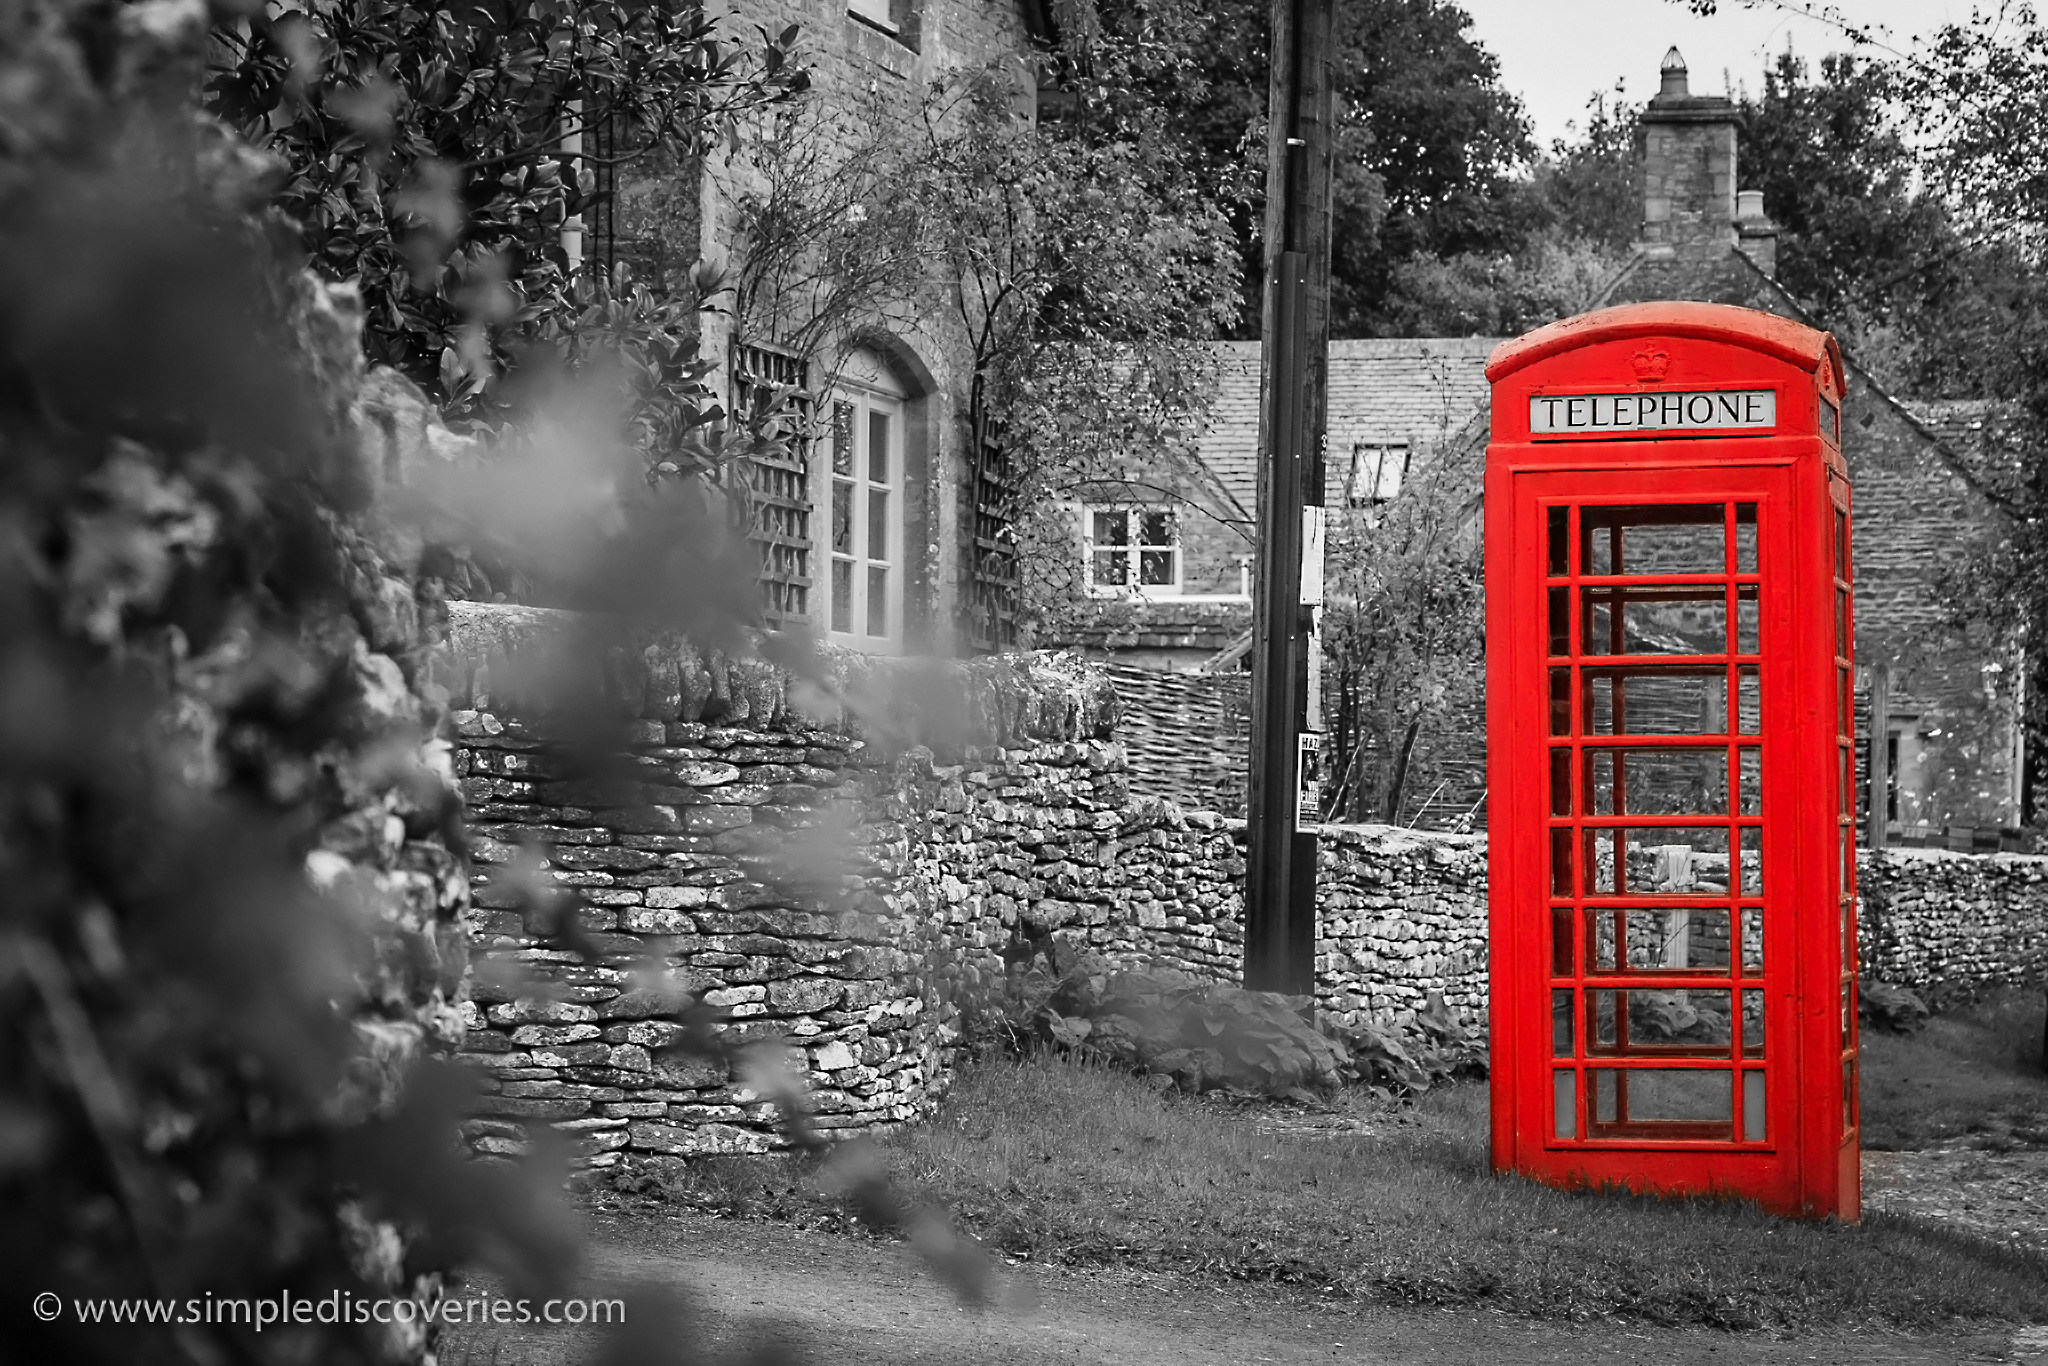 united_kingdom_phonebooth